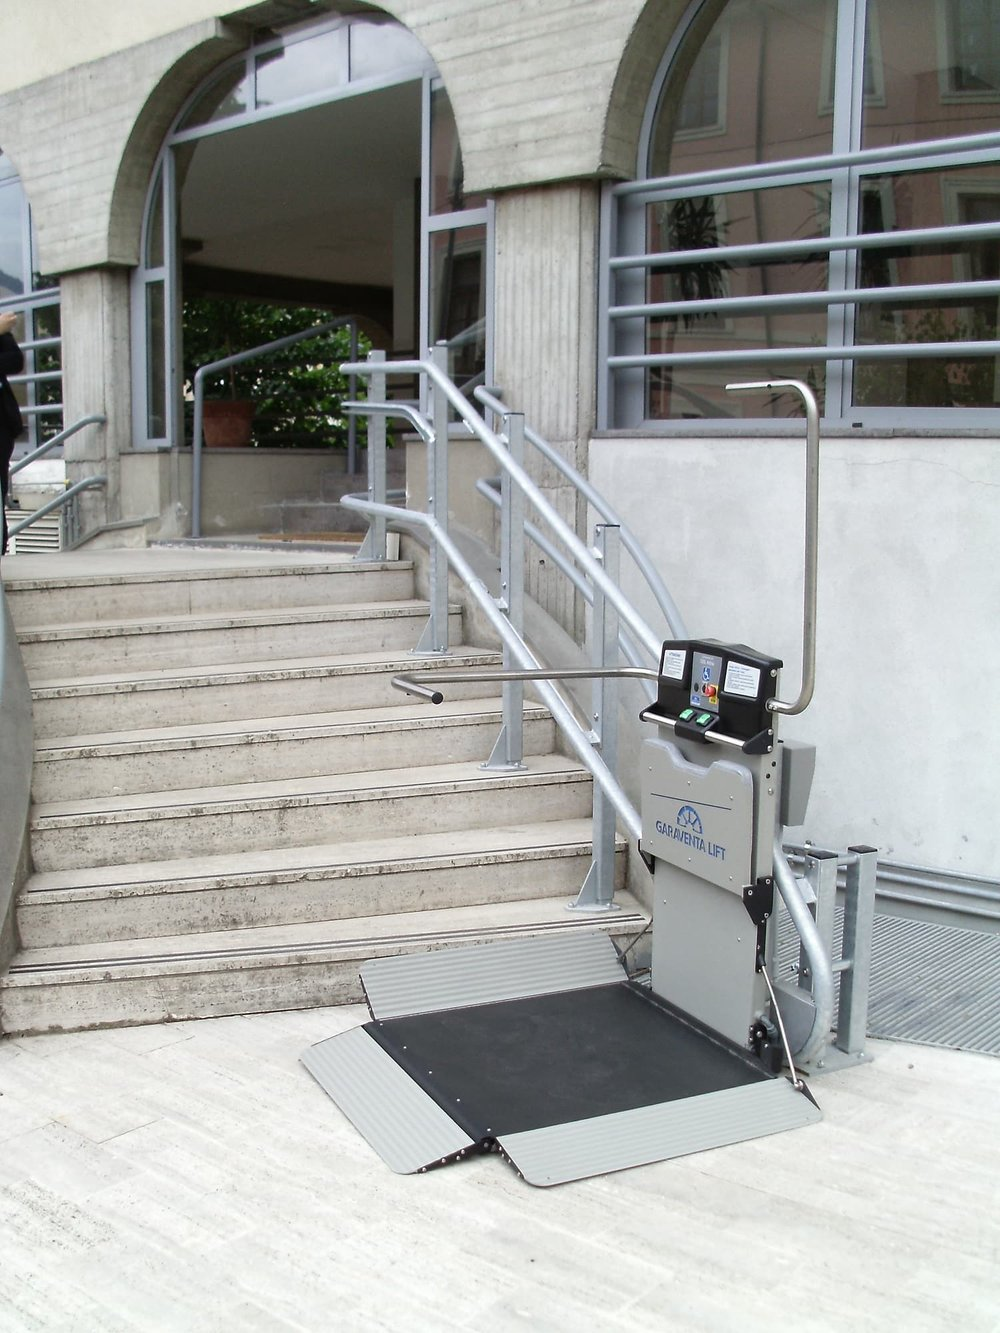 external-inclined-plaform-access-stair-lift.JPG